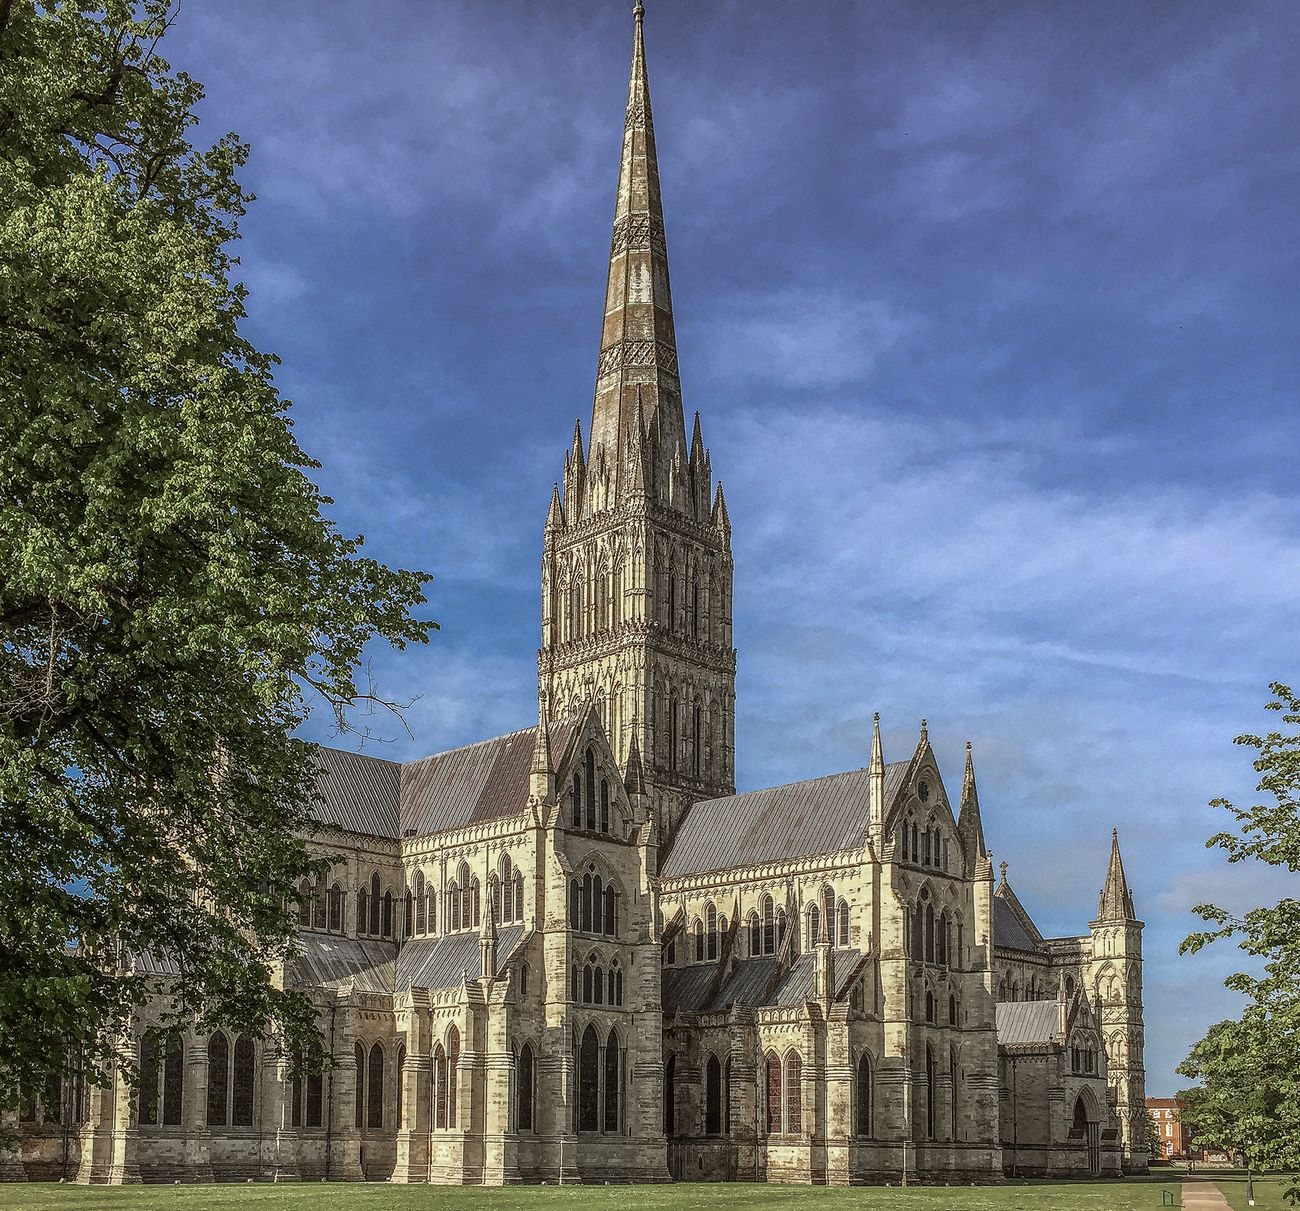 Salisbury Cathedral from the outside